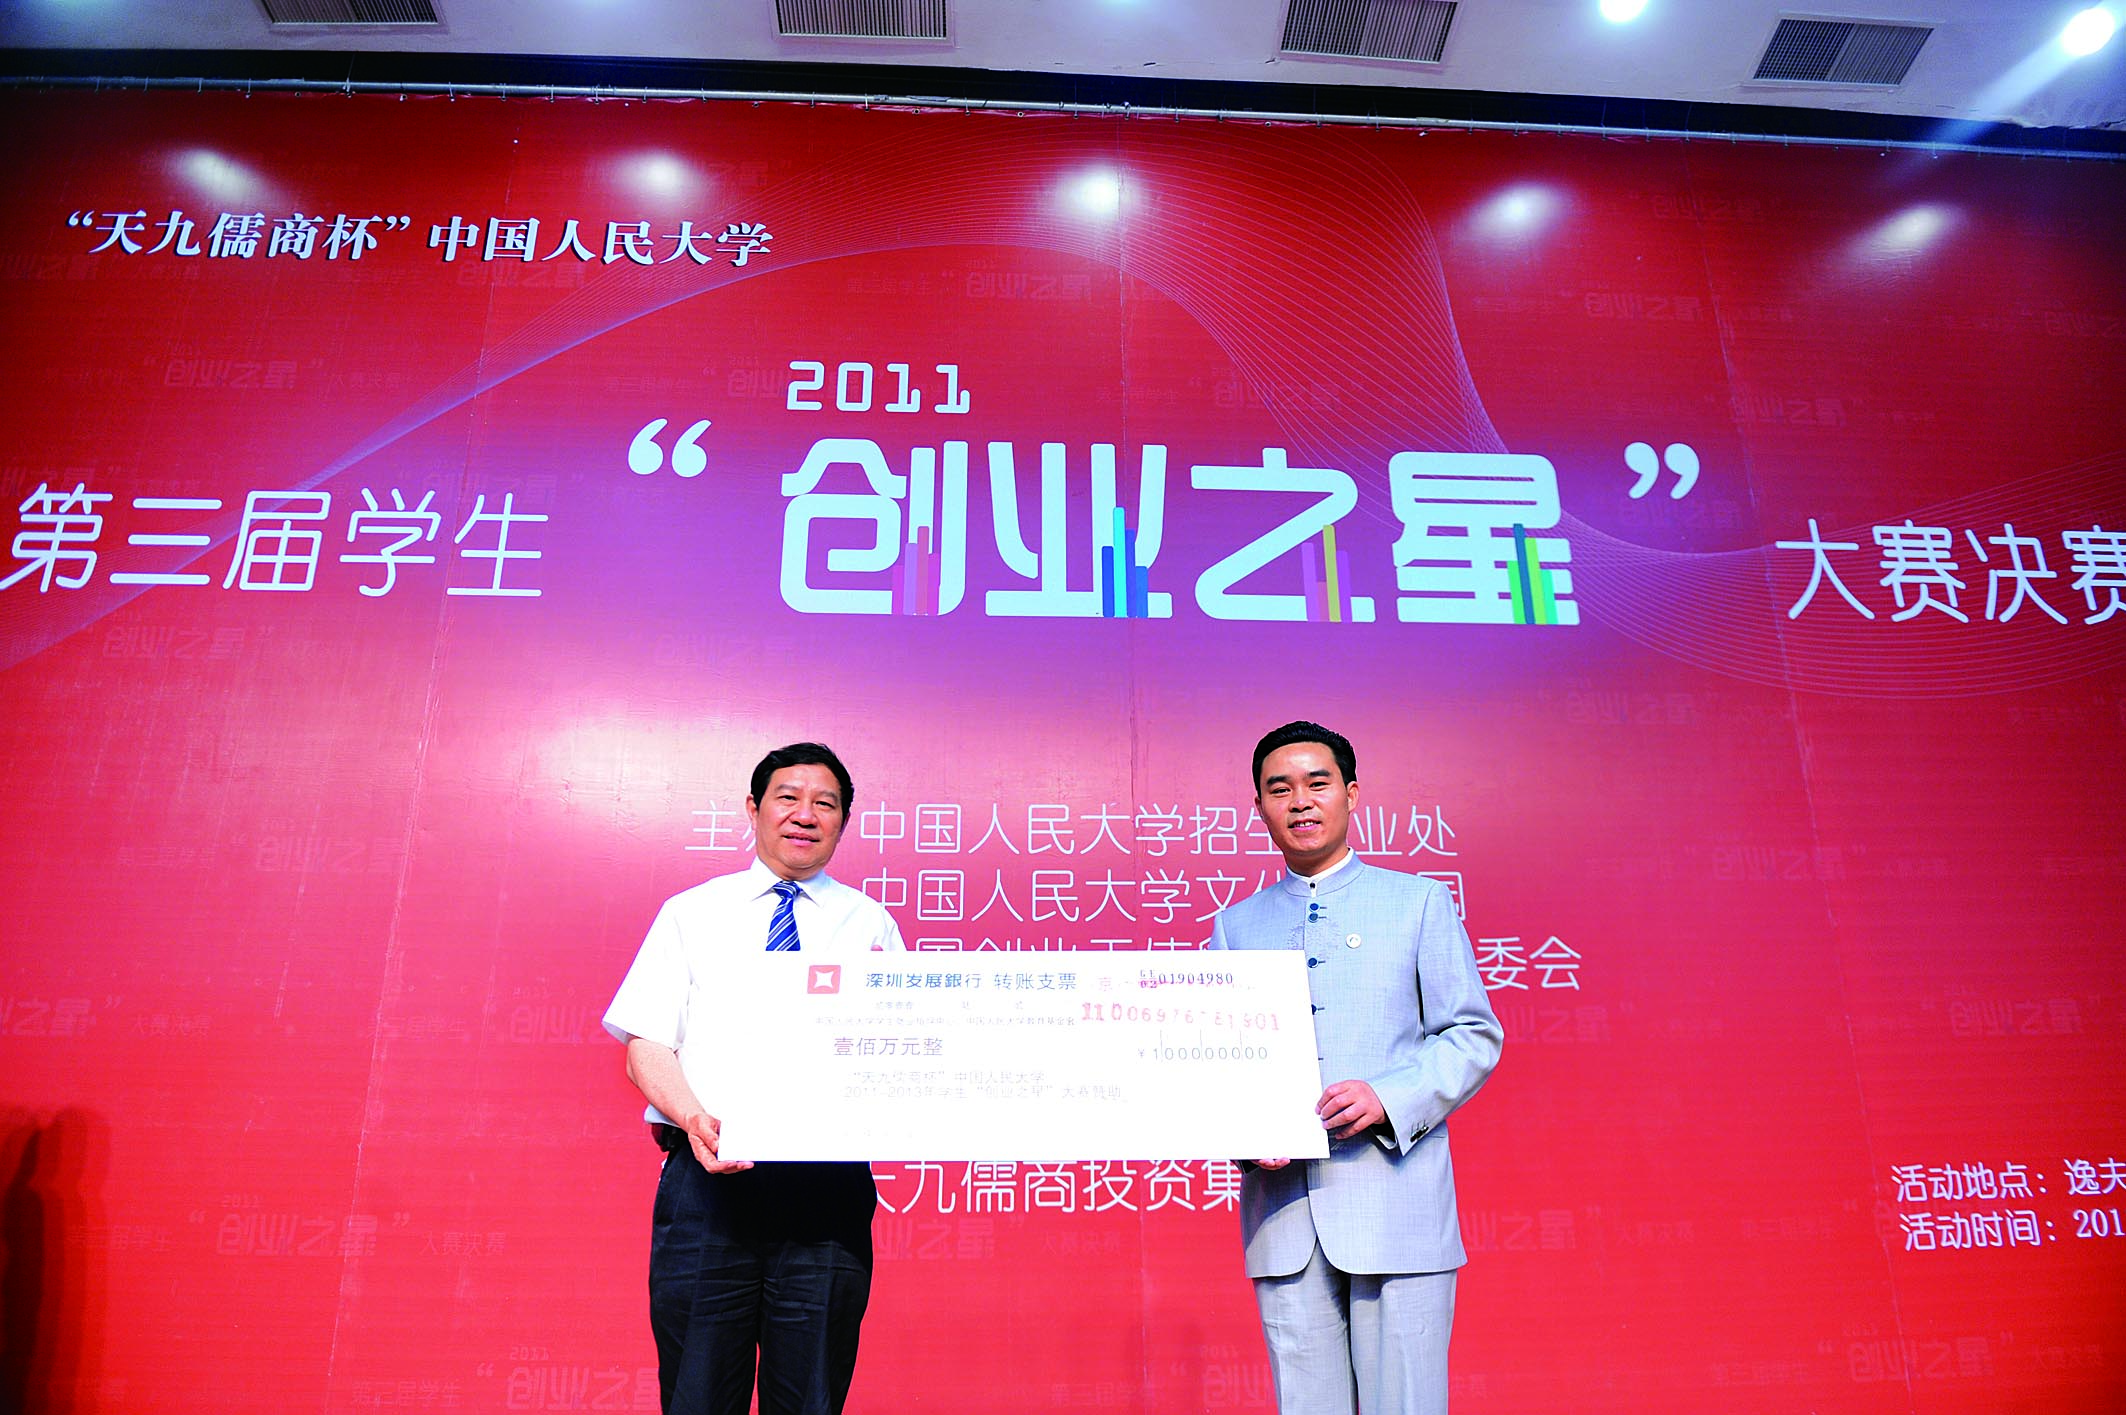 ToJoy donating RMB 1 million to rural areas in Sichuan Province